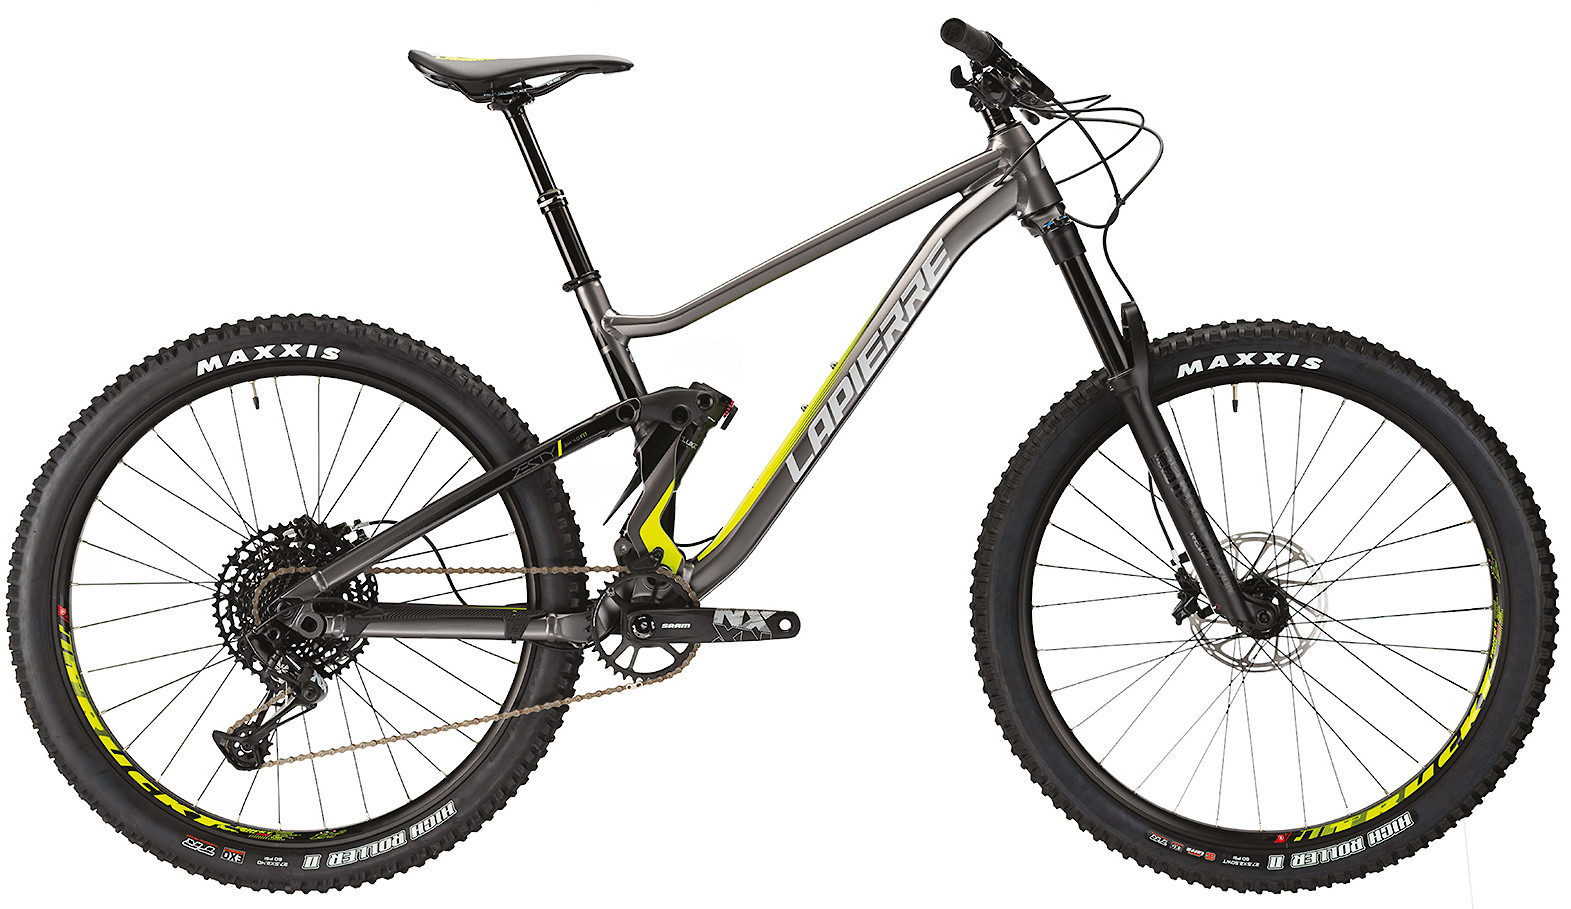 2020 Lapierre Zesty AM Fit 4.0